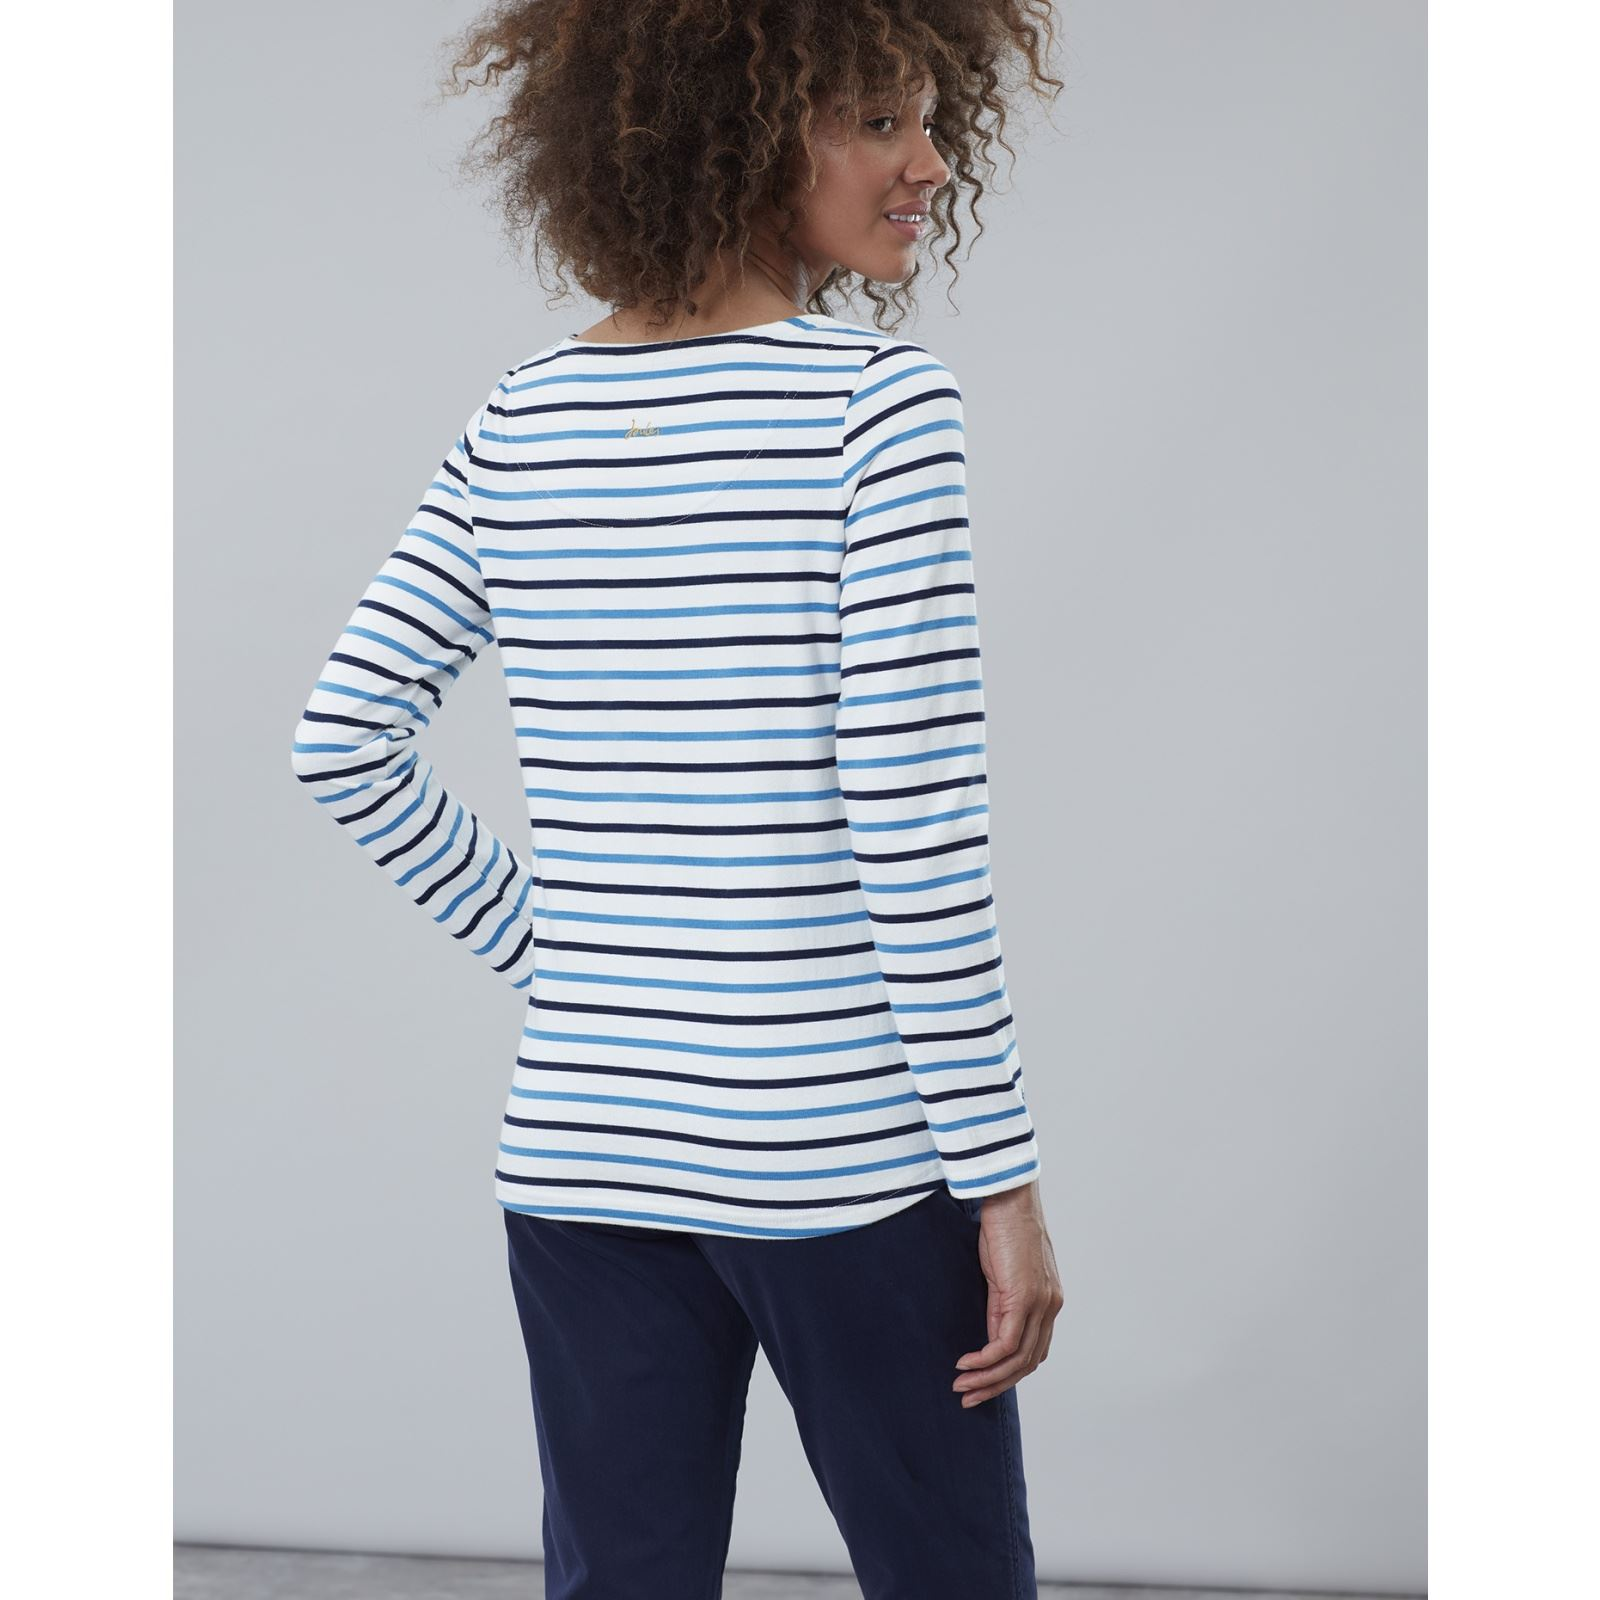 Joules-Harbour-Bordado-Manga-Larga-Jersey-Top-Mas-Colores miniatura 13